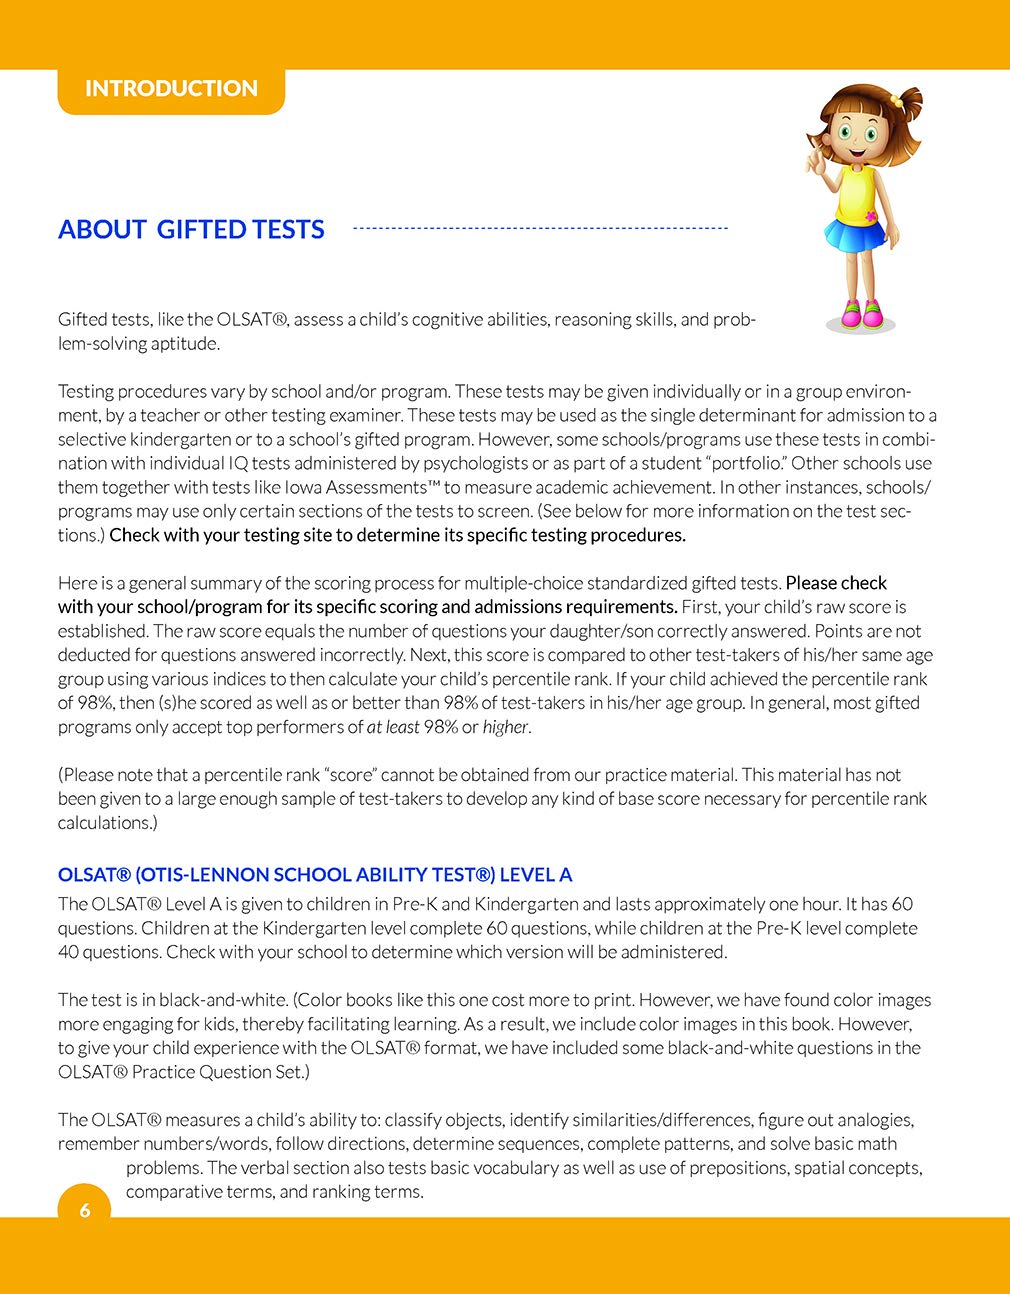 Amazon.com: Gifted and Talented OLSAT Test Prep: Gifted test prep book for the OLSAT; Workbook for children in preschool and kindergarten (Gifted Games) ...